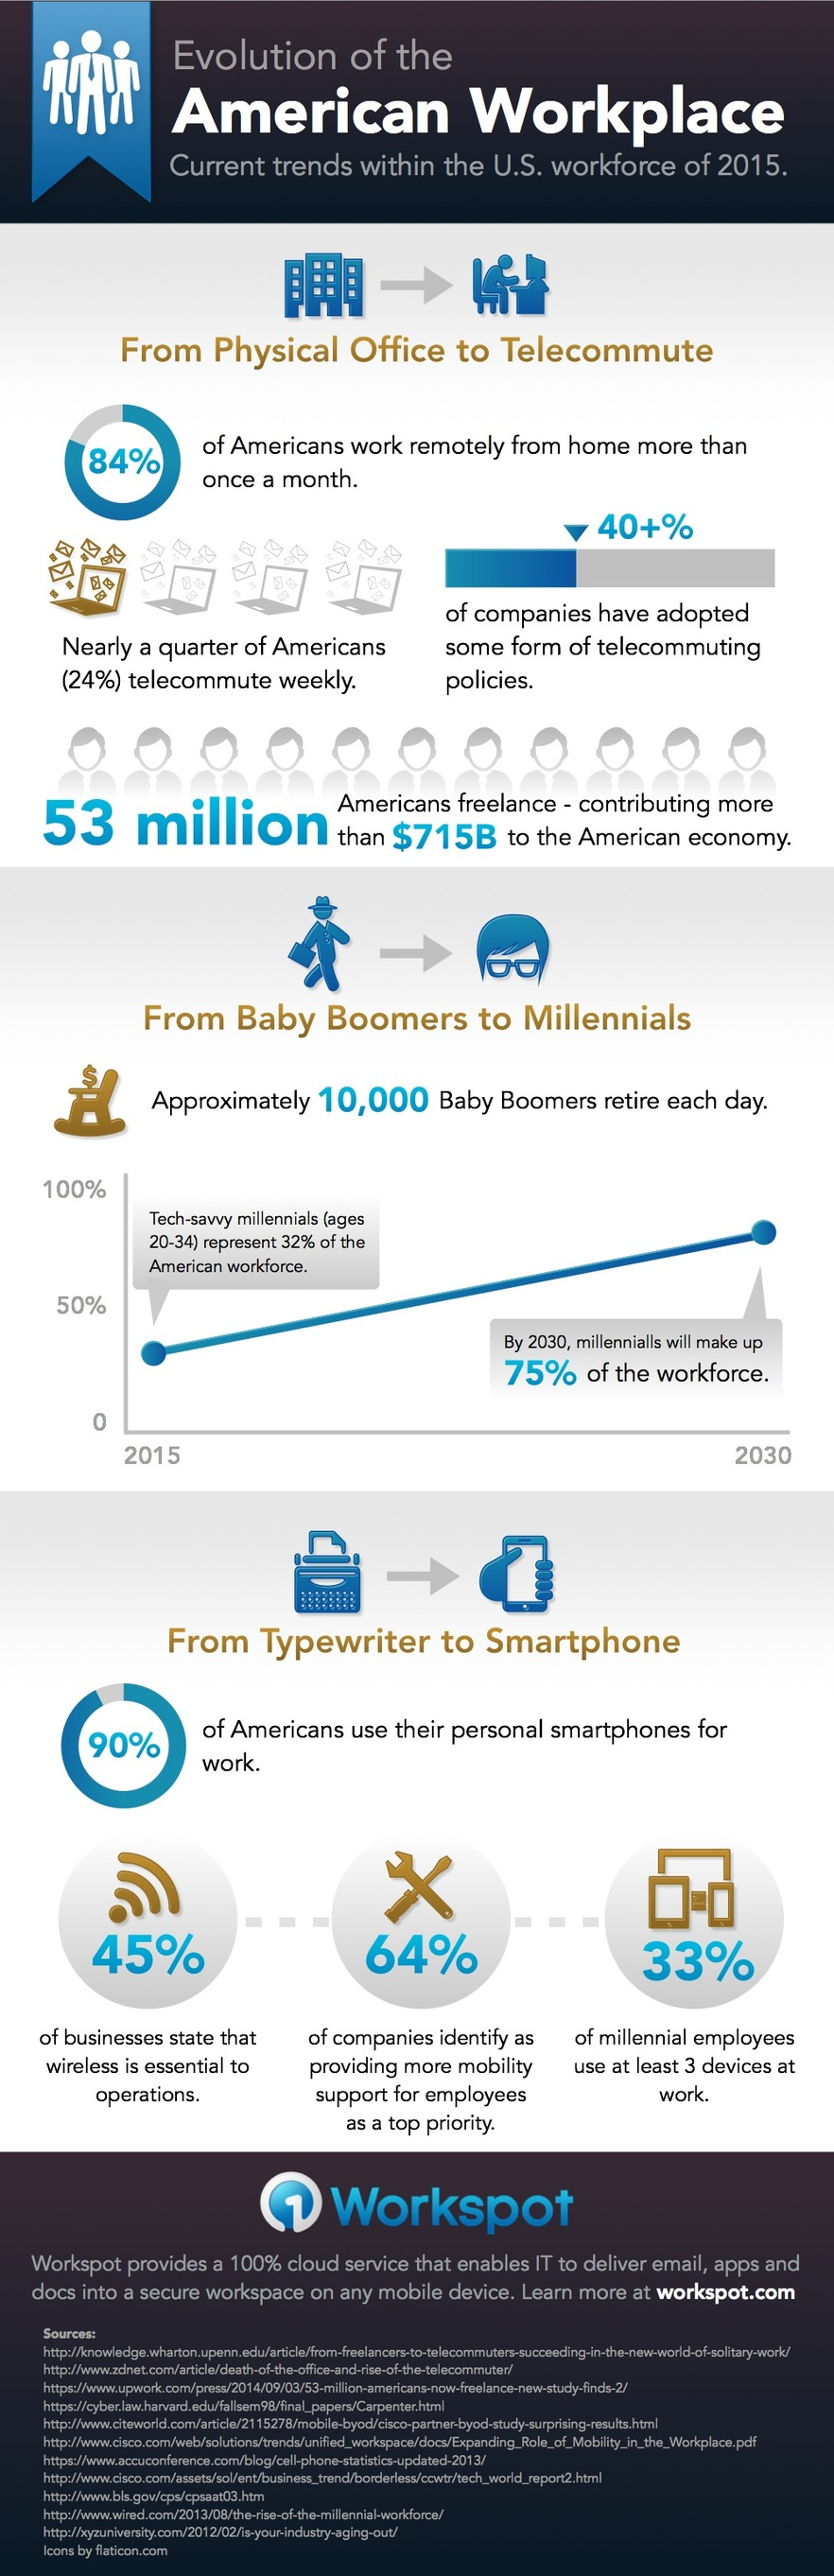 Top American Workplace Trends of 2015 (Infographic)